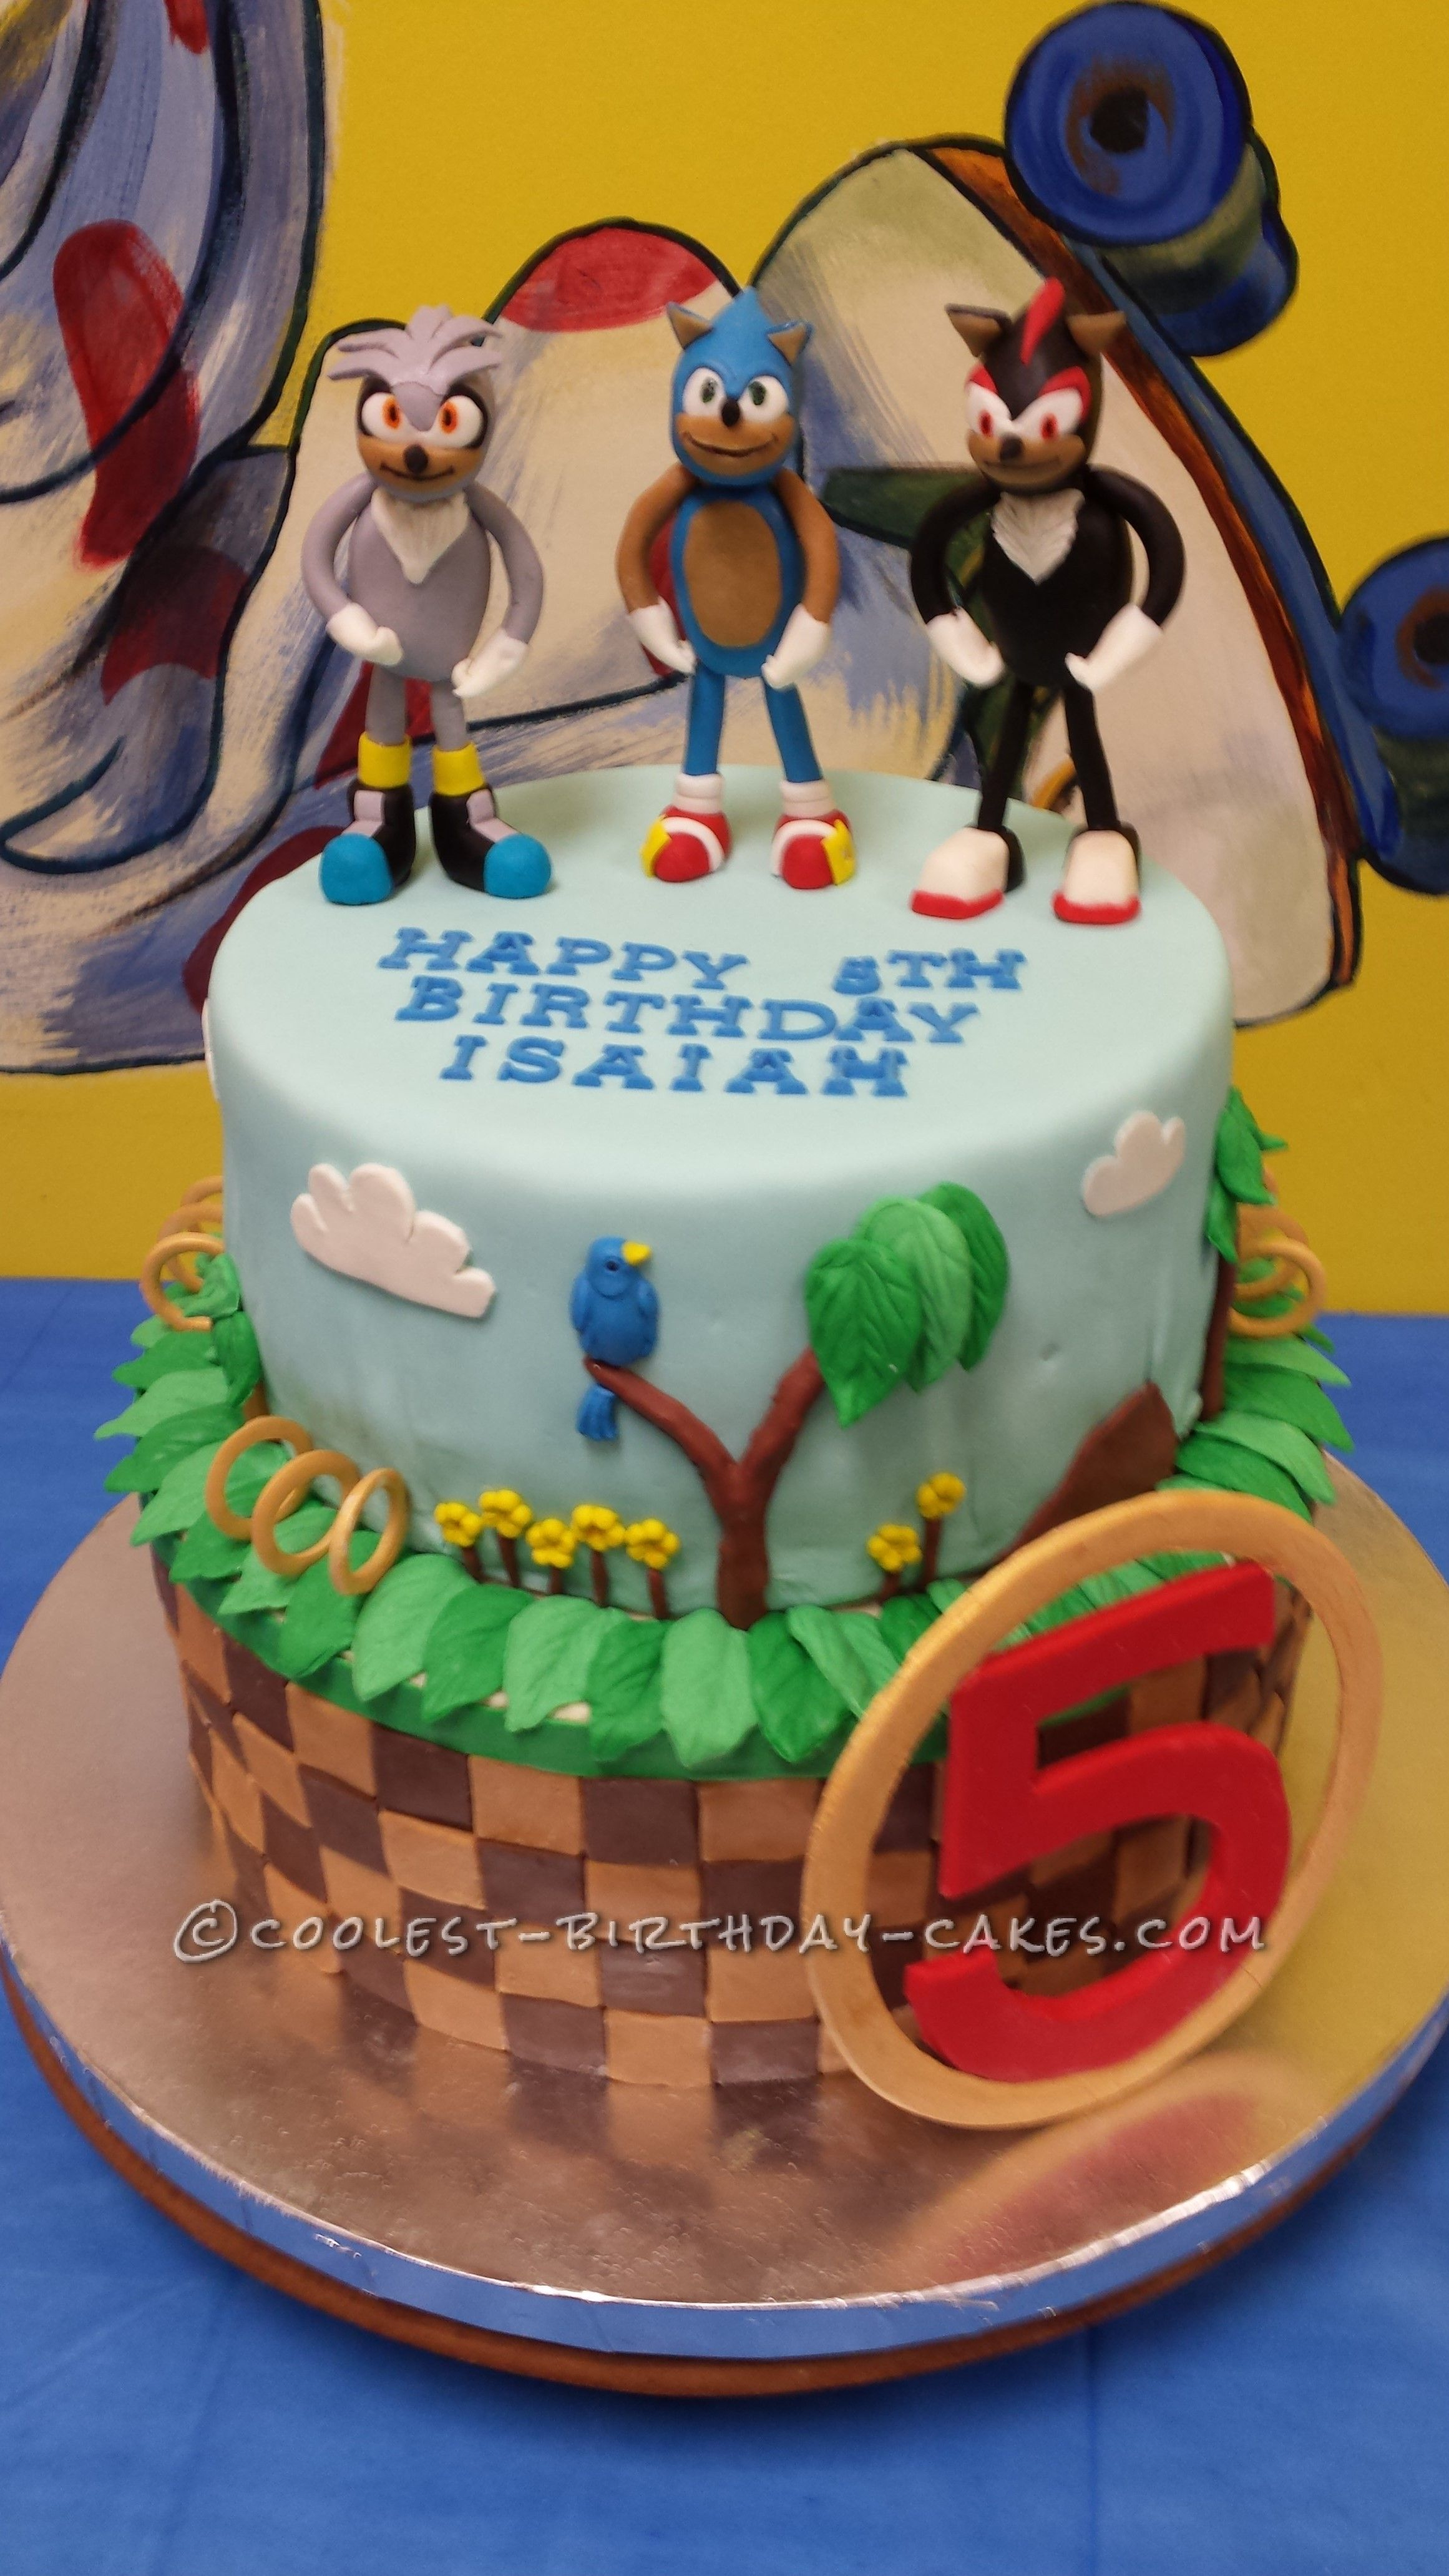 Coolest Sonic Silver And Shadow The Hedgehogs Birthday Cake Sonic Birthday Cake Hedgehog Cake Sonic The Hedgehog Cake